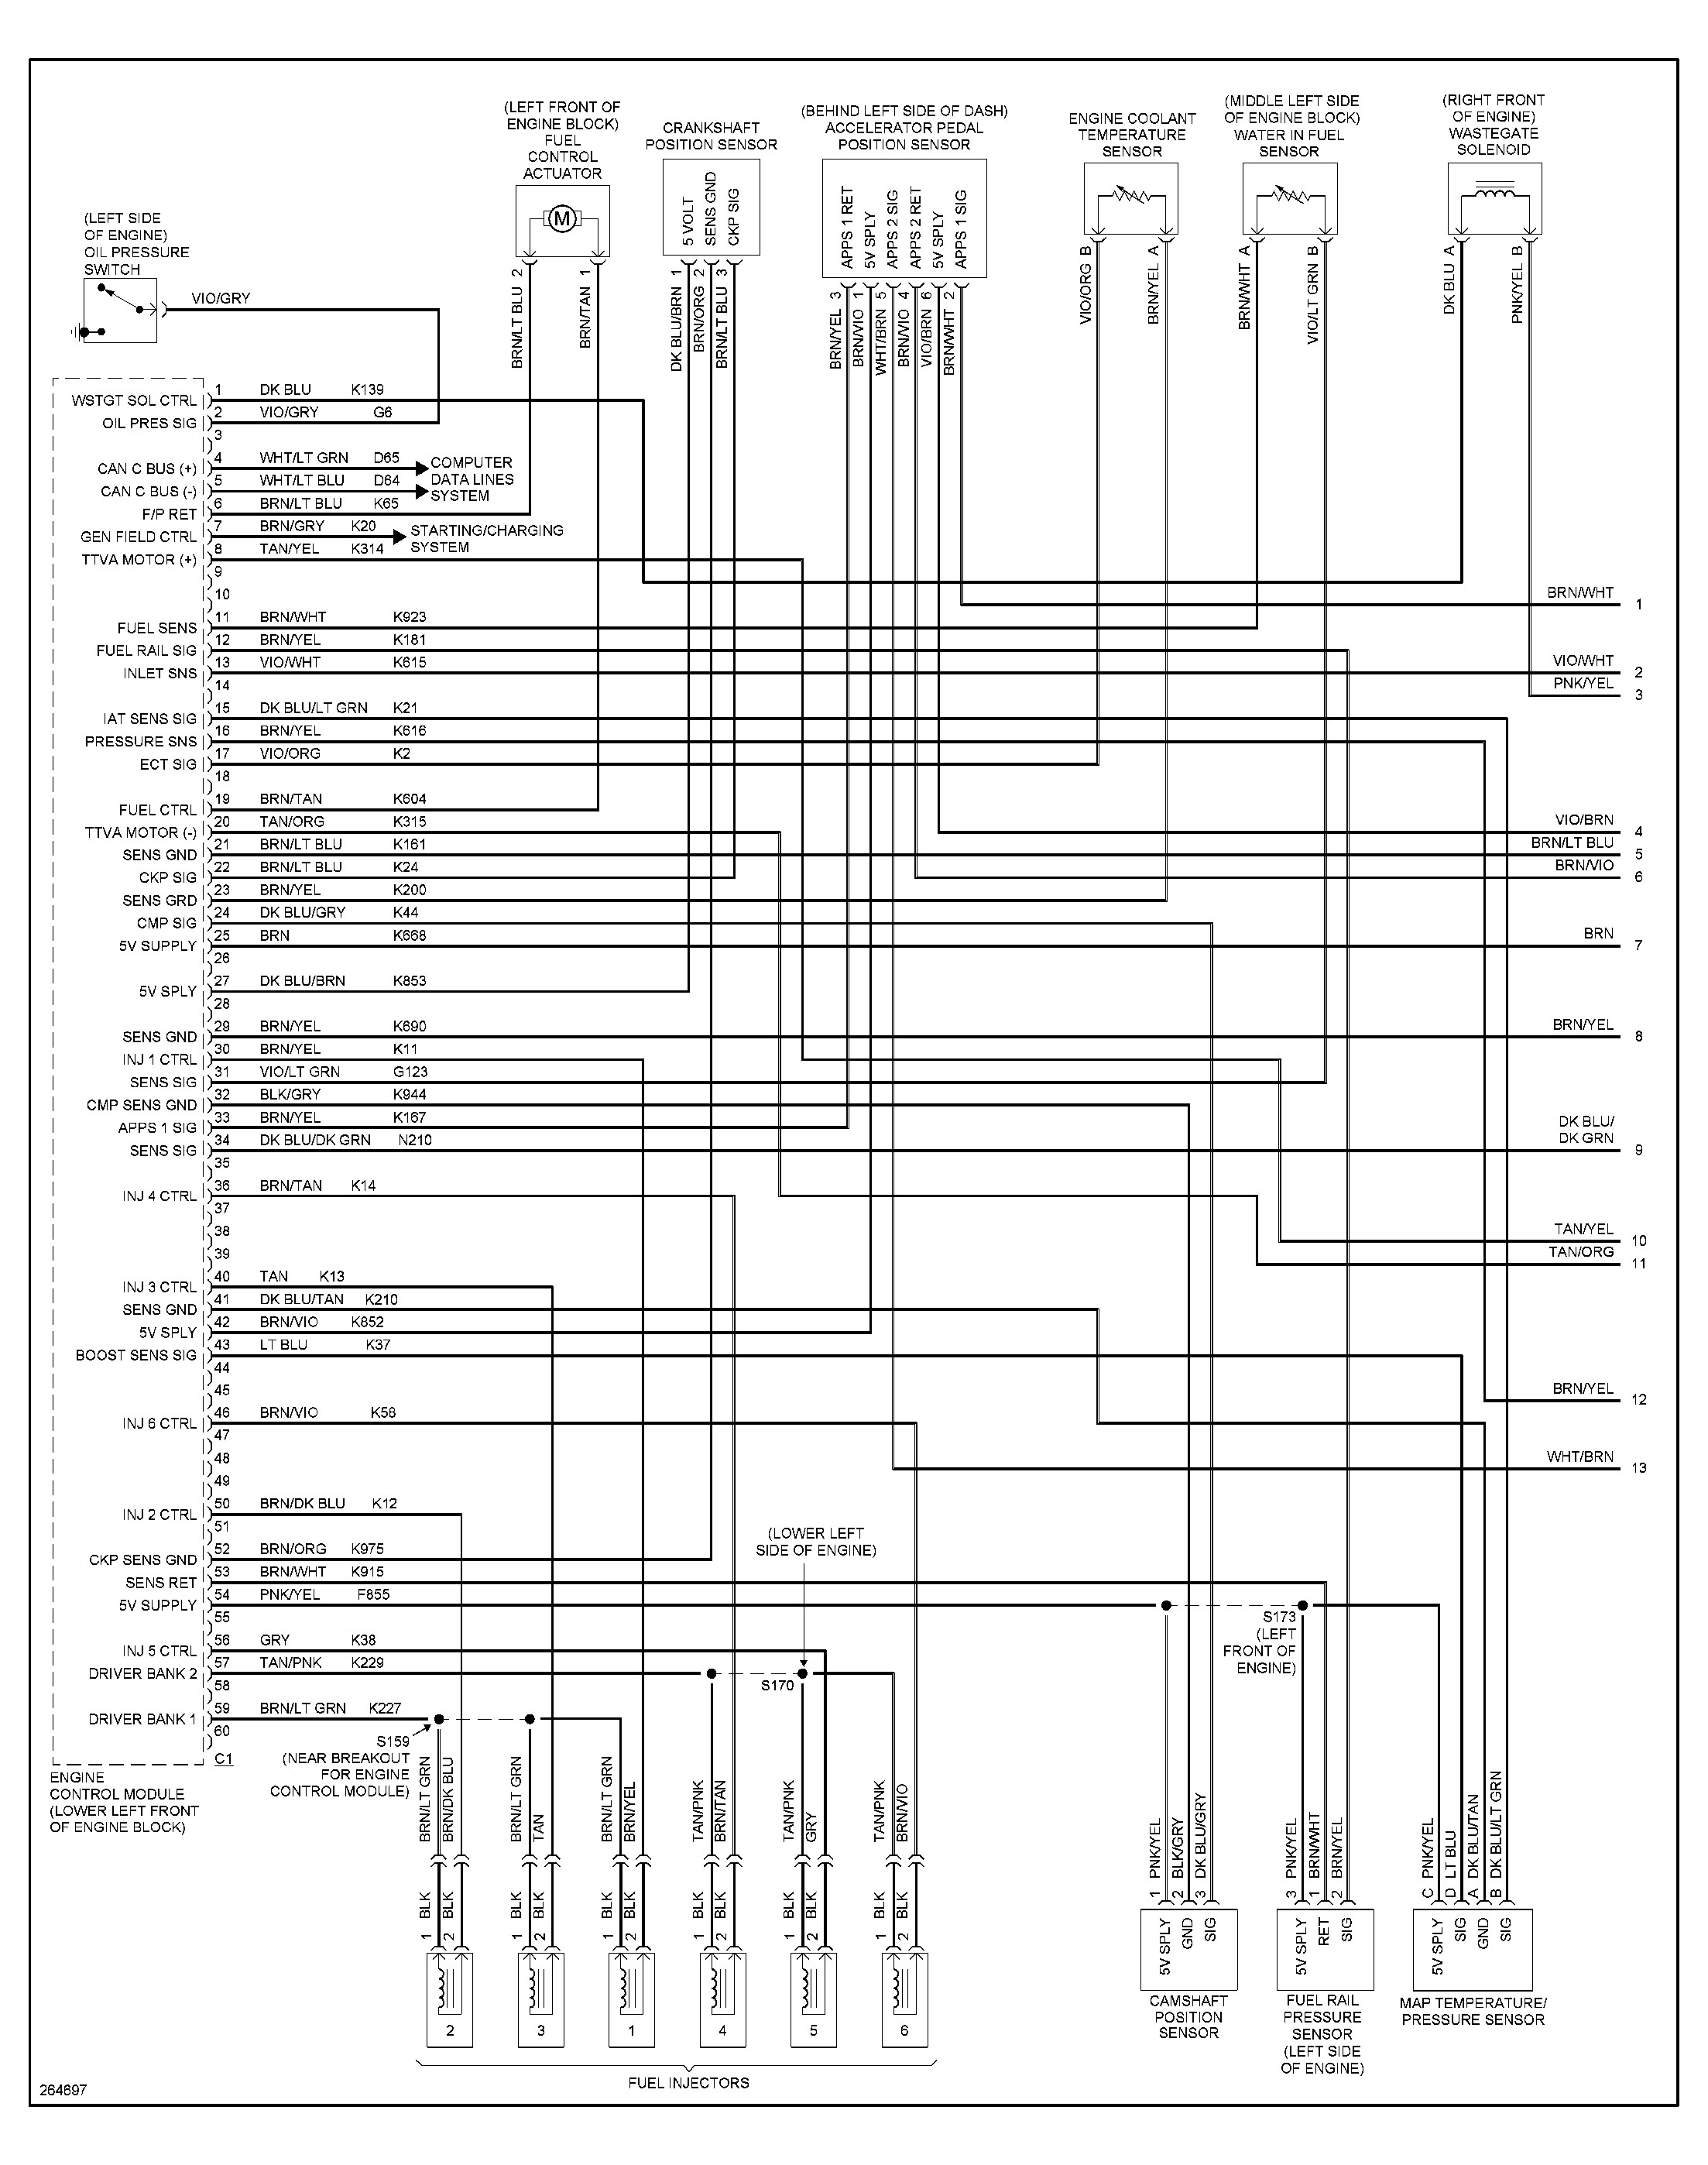 75 dodge headlight circuit diagram 2004 dodge ram 1500 wiring diagram | free wiring diagram 75 series landcruiser headlight wiring diagram